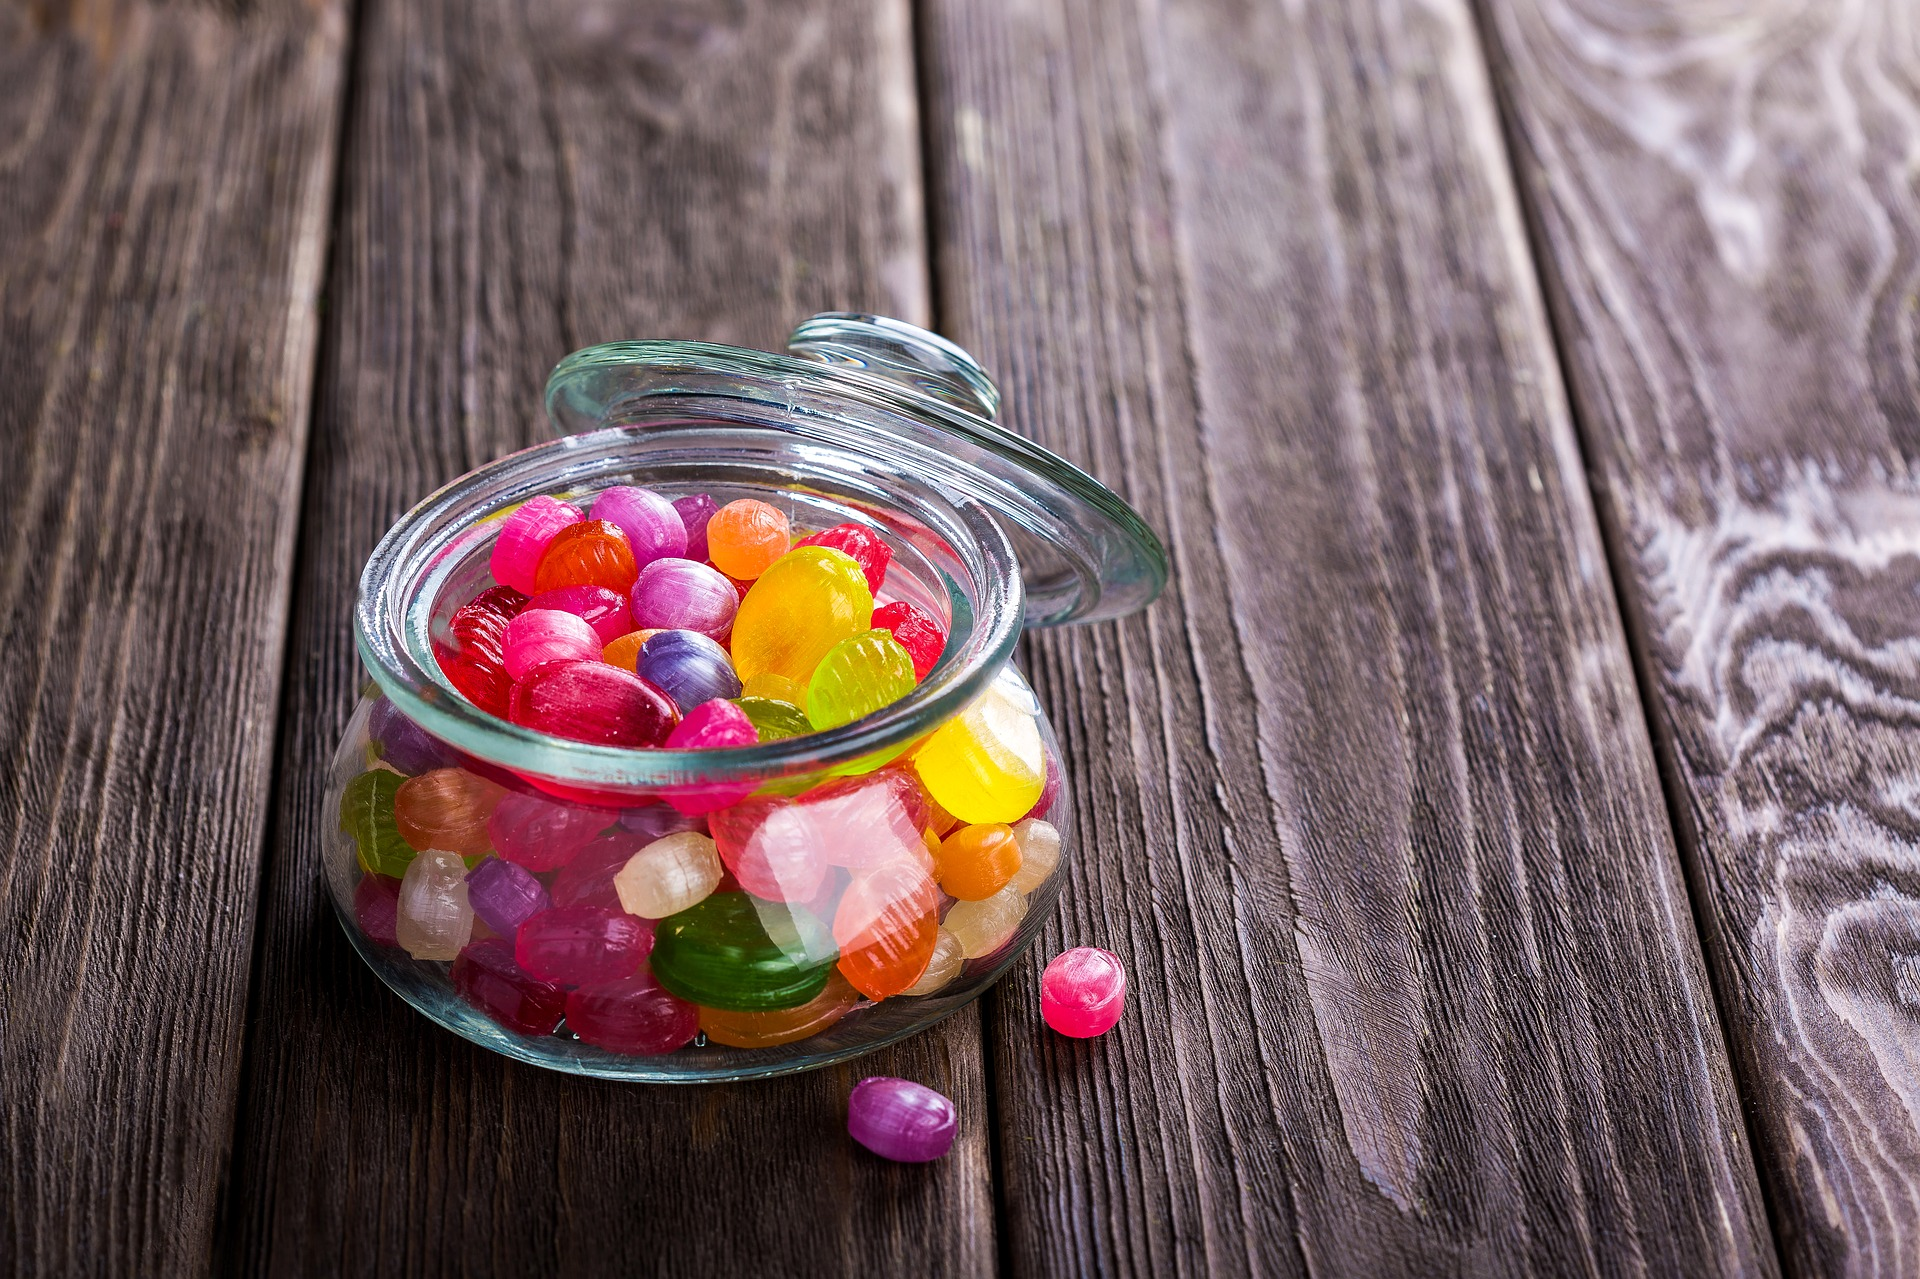 A bowl of candy. Image courtesy Pixabay user, Daria-Yakovleva